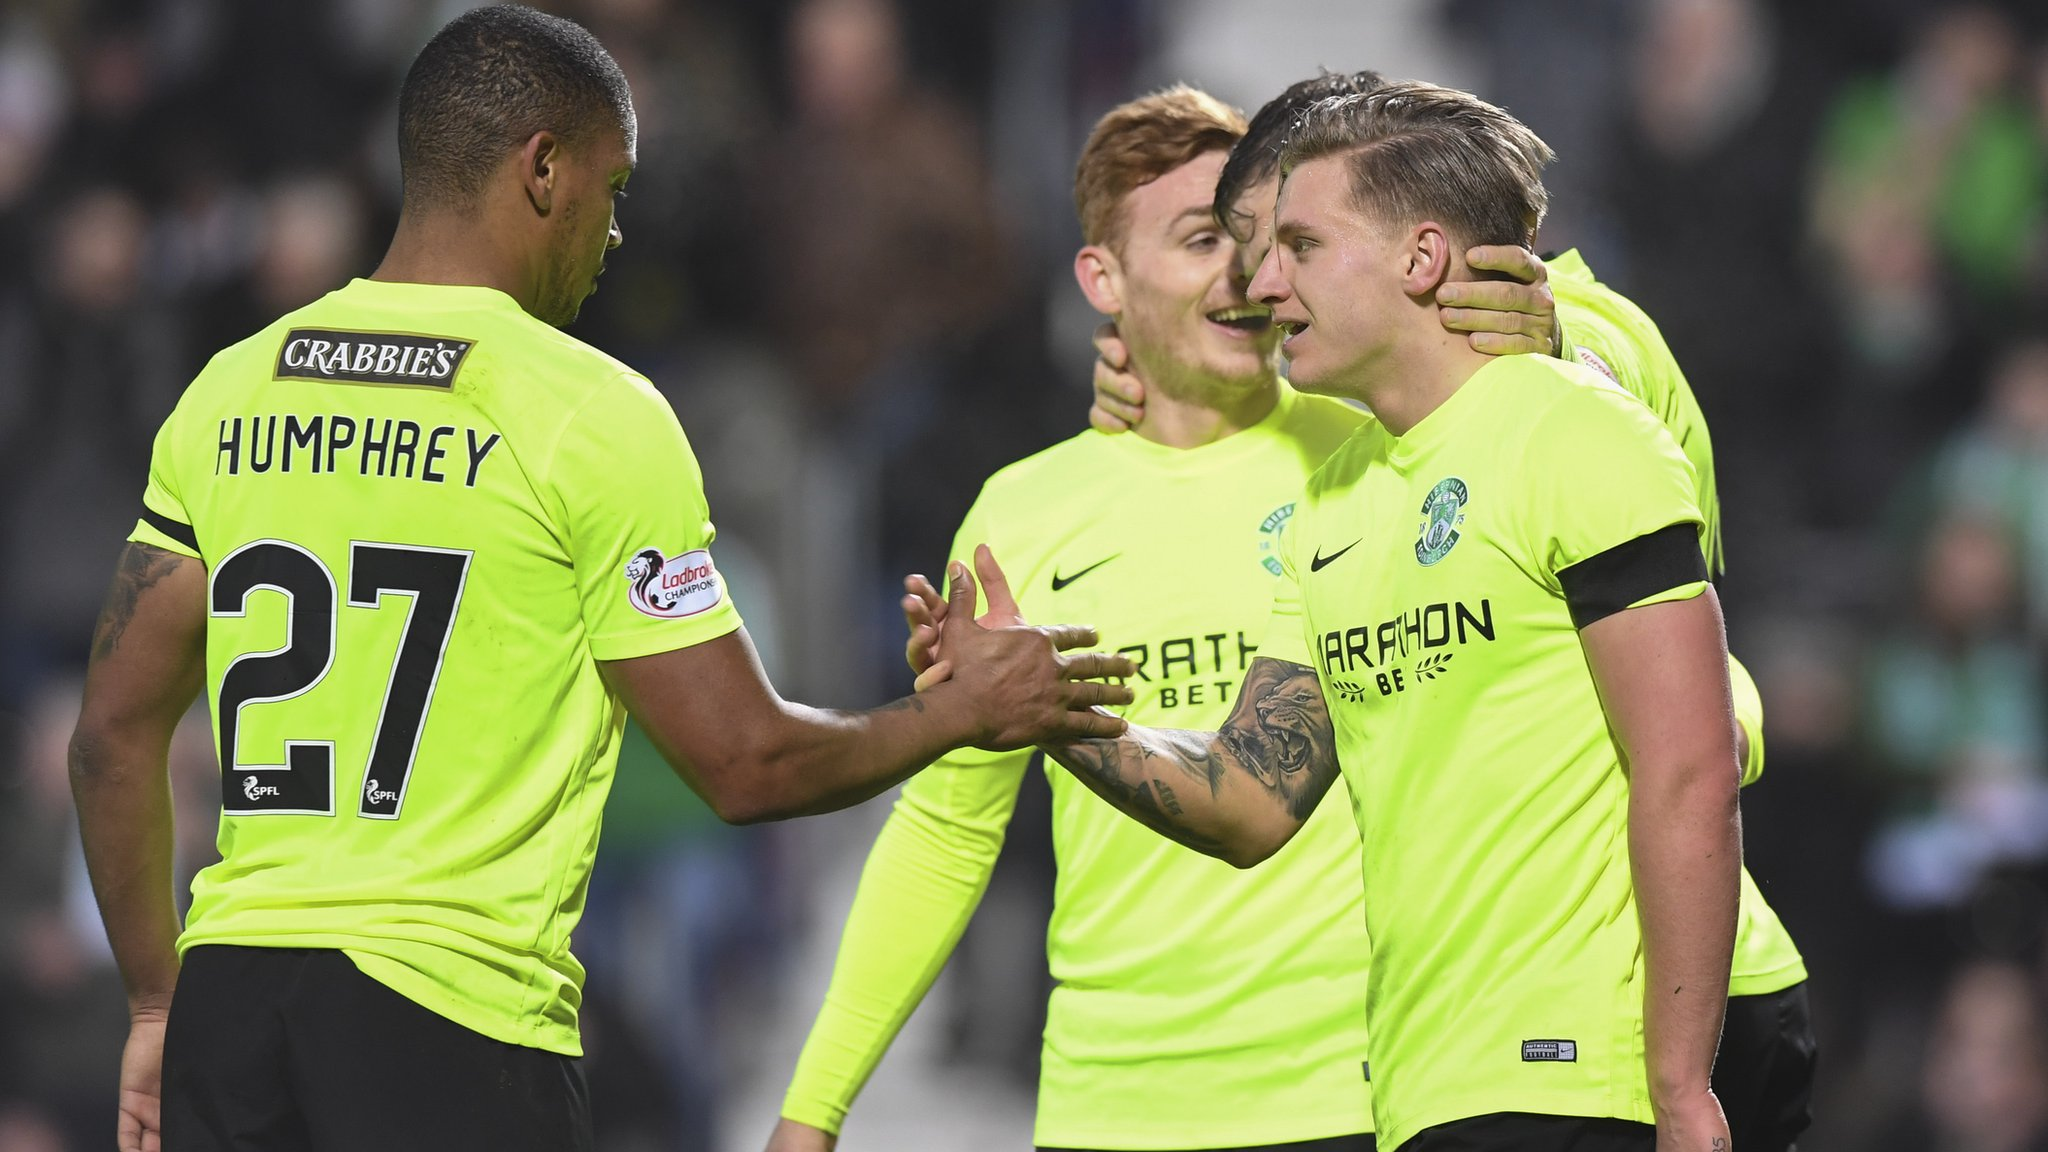 Scottish Cup: Hibs boss Neil Lennon pleased with start to trophy defence